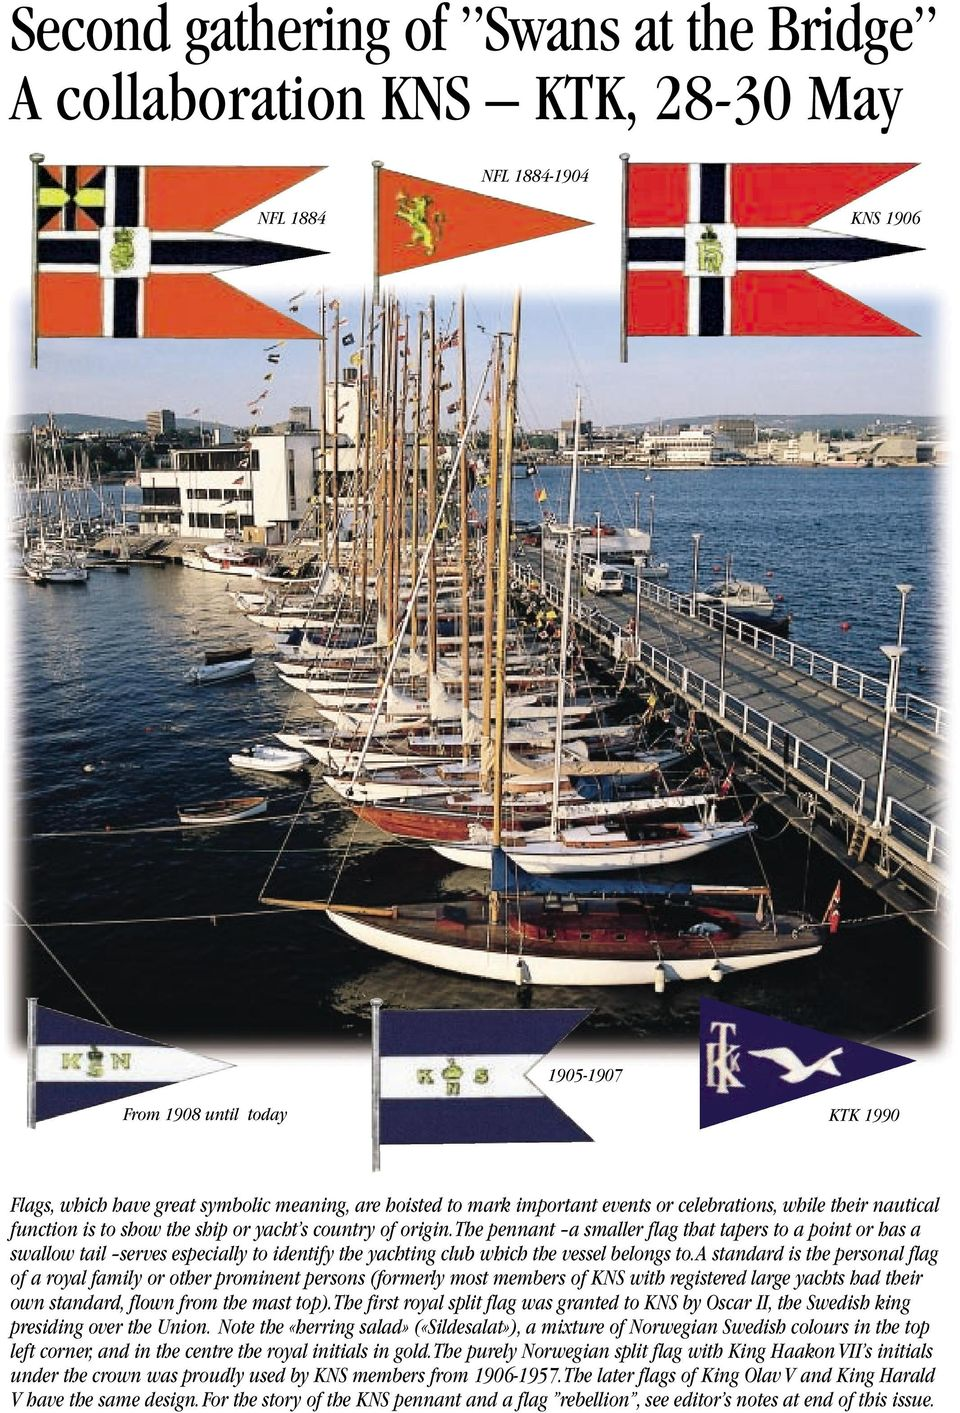 the pennant a smaller flag that tapers to a point or has a swallow tail serves especially to identify the yachting club which the vessel belongs to.